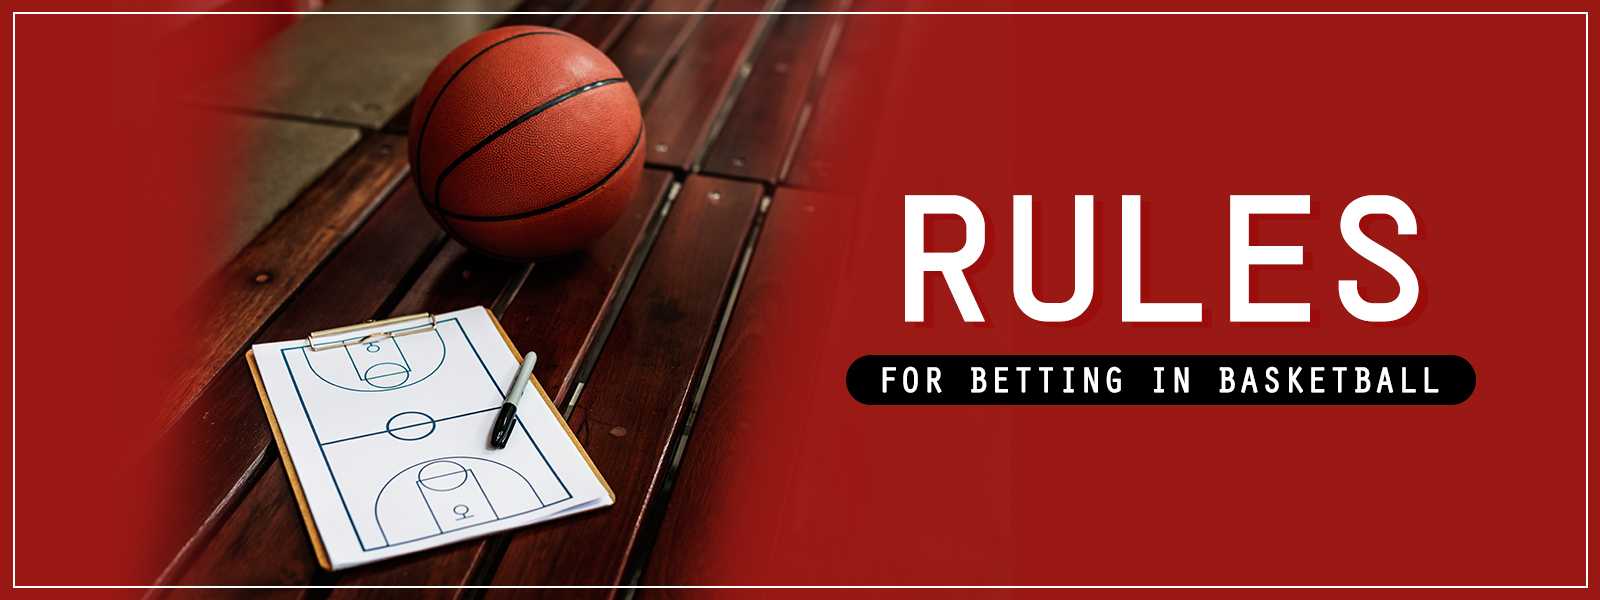 Rules for betting on Basketball article